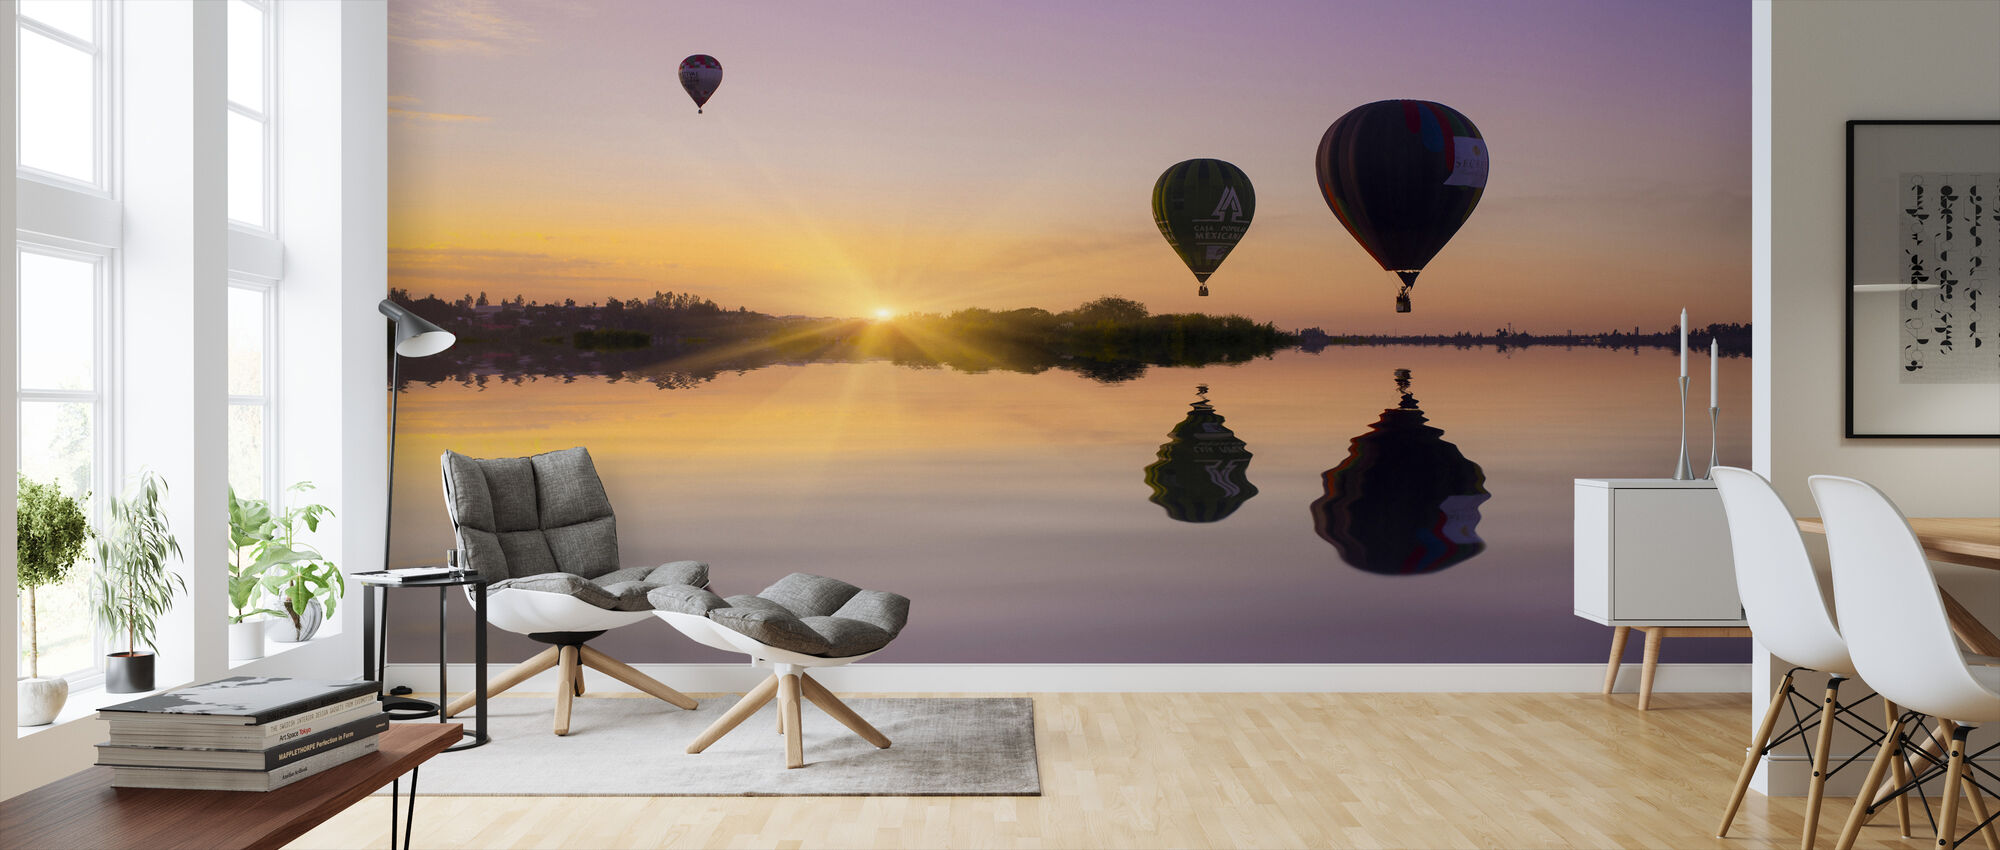 Love is in the Air - Wallpaper - Living Room